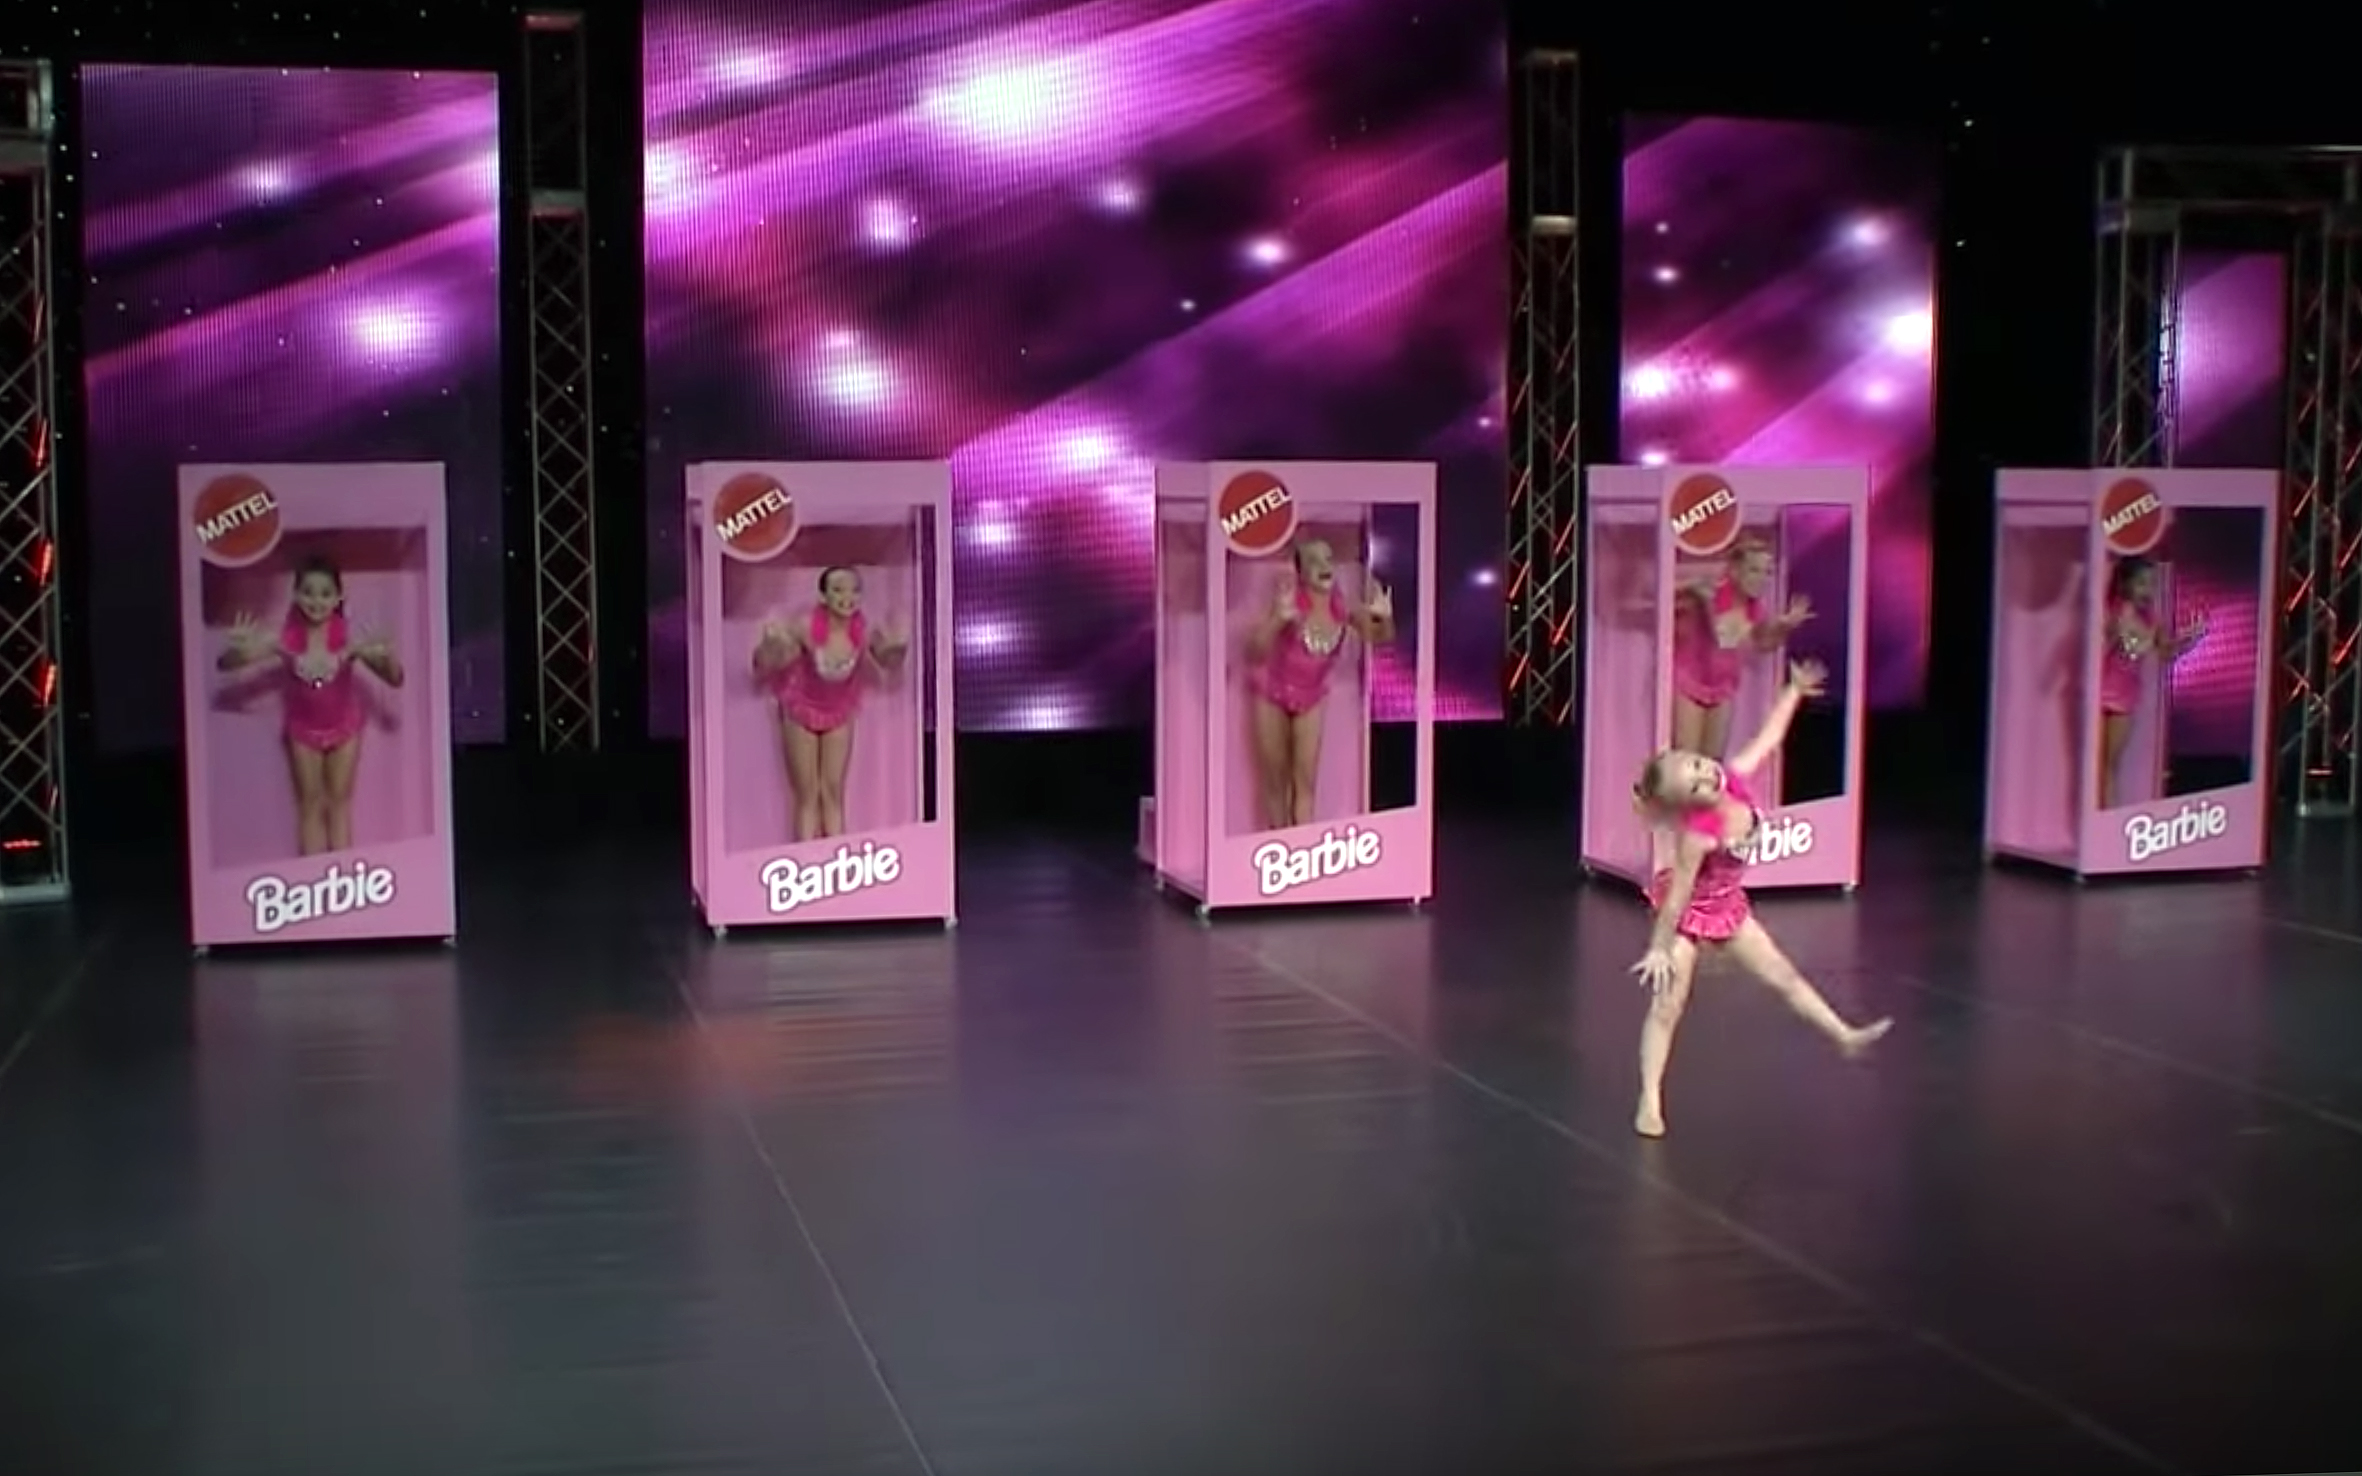 79.Barbie Dance / Global - Barbie Dance is a dance style mostly performed by children who act like a Barbie or twirling ballerina dolls that allow girls to control the choreography like a Barbie doll to bend into a classic pliéa with her body spinning gracefully, causing her skirt to twirl.